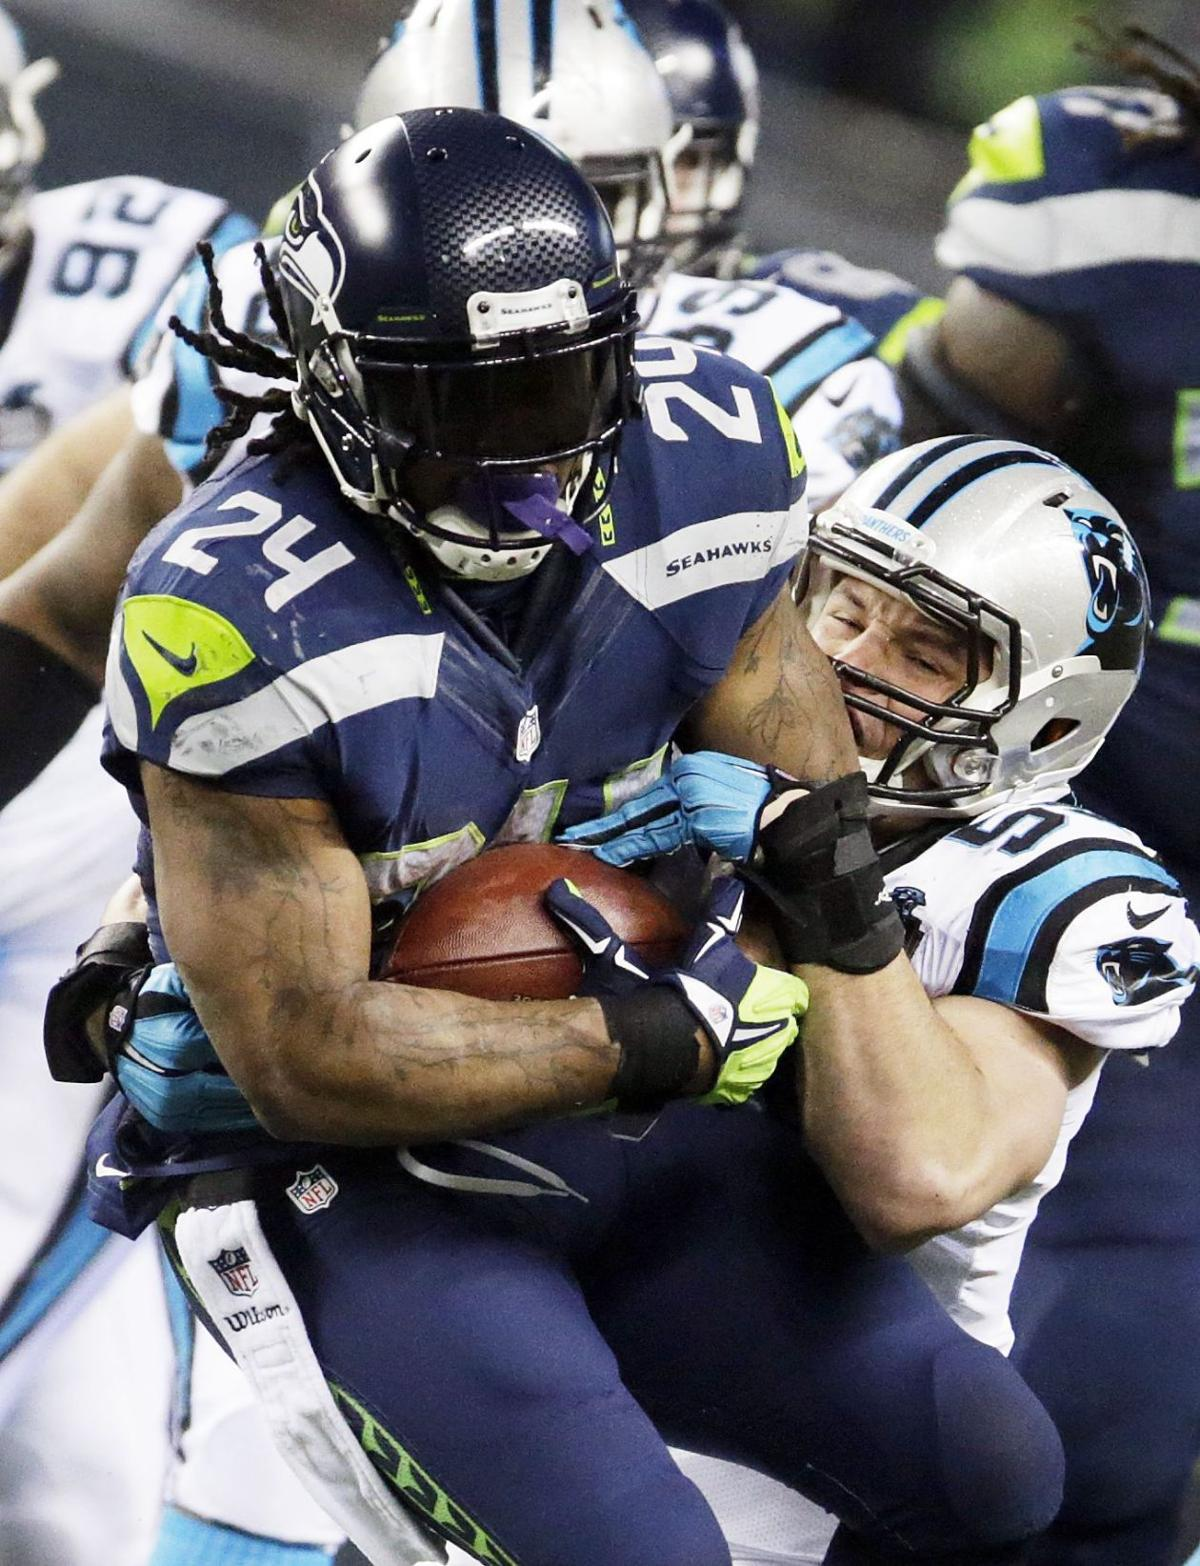 Wilson and Chancellor leads Seattle past Carolina